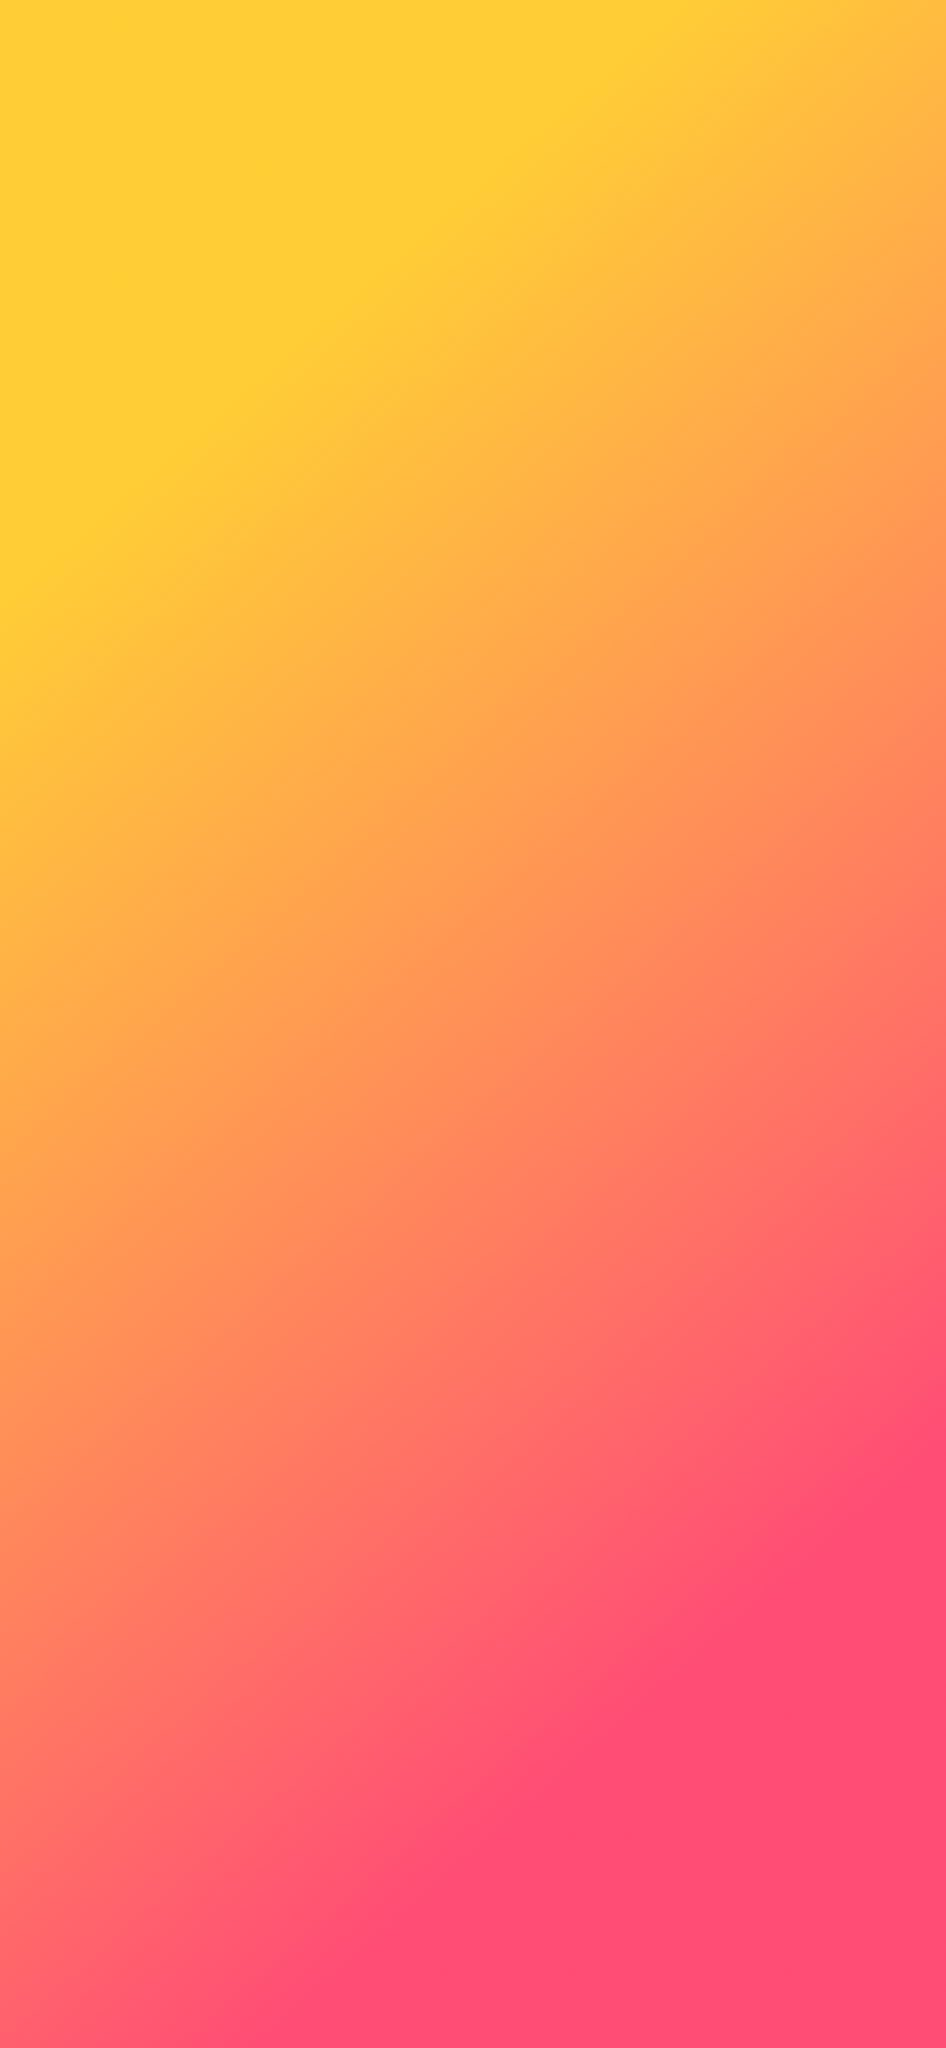 Ios 14 Wallpaper Gradient Inspirations For Iphone And Ipad